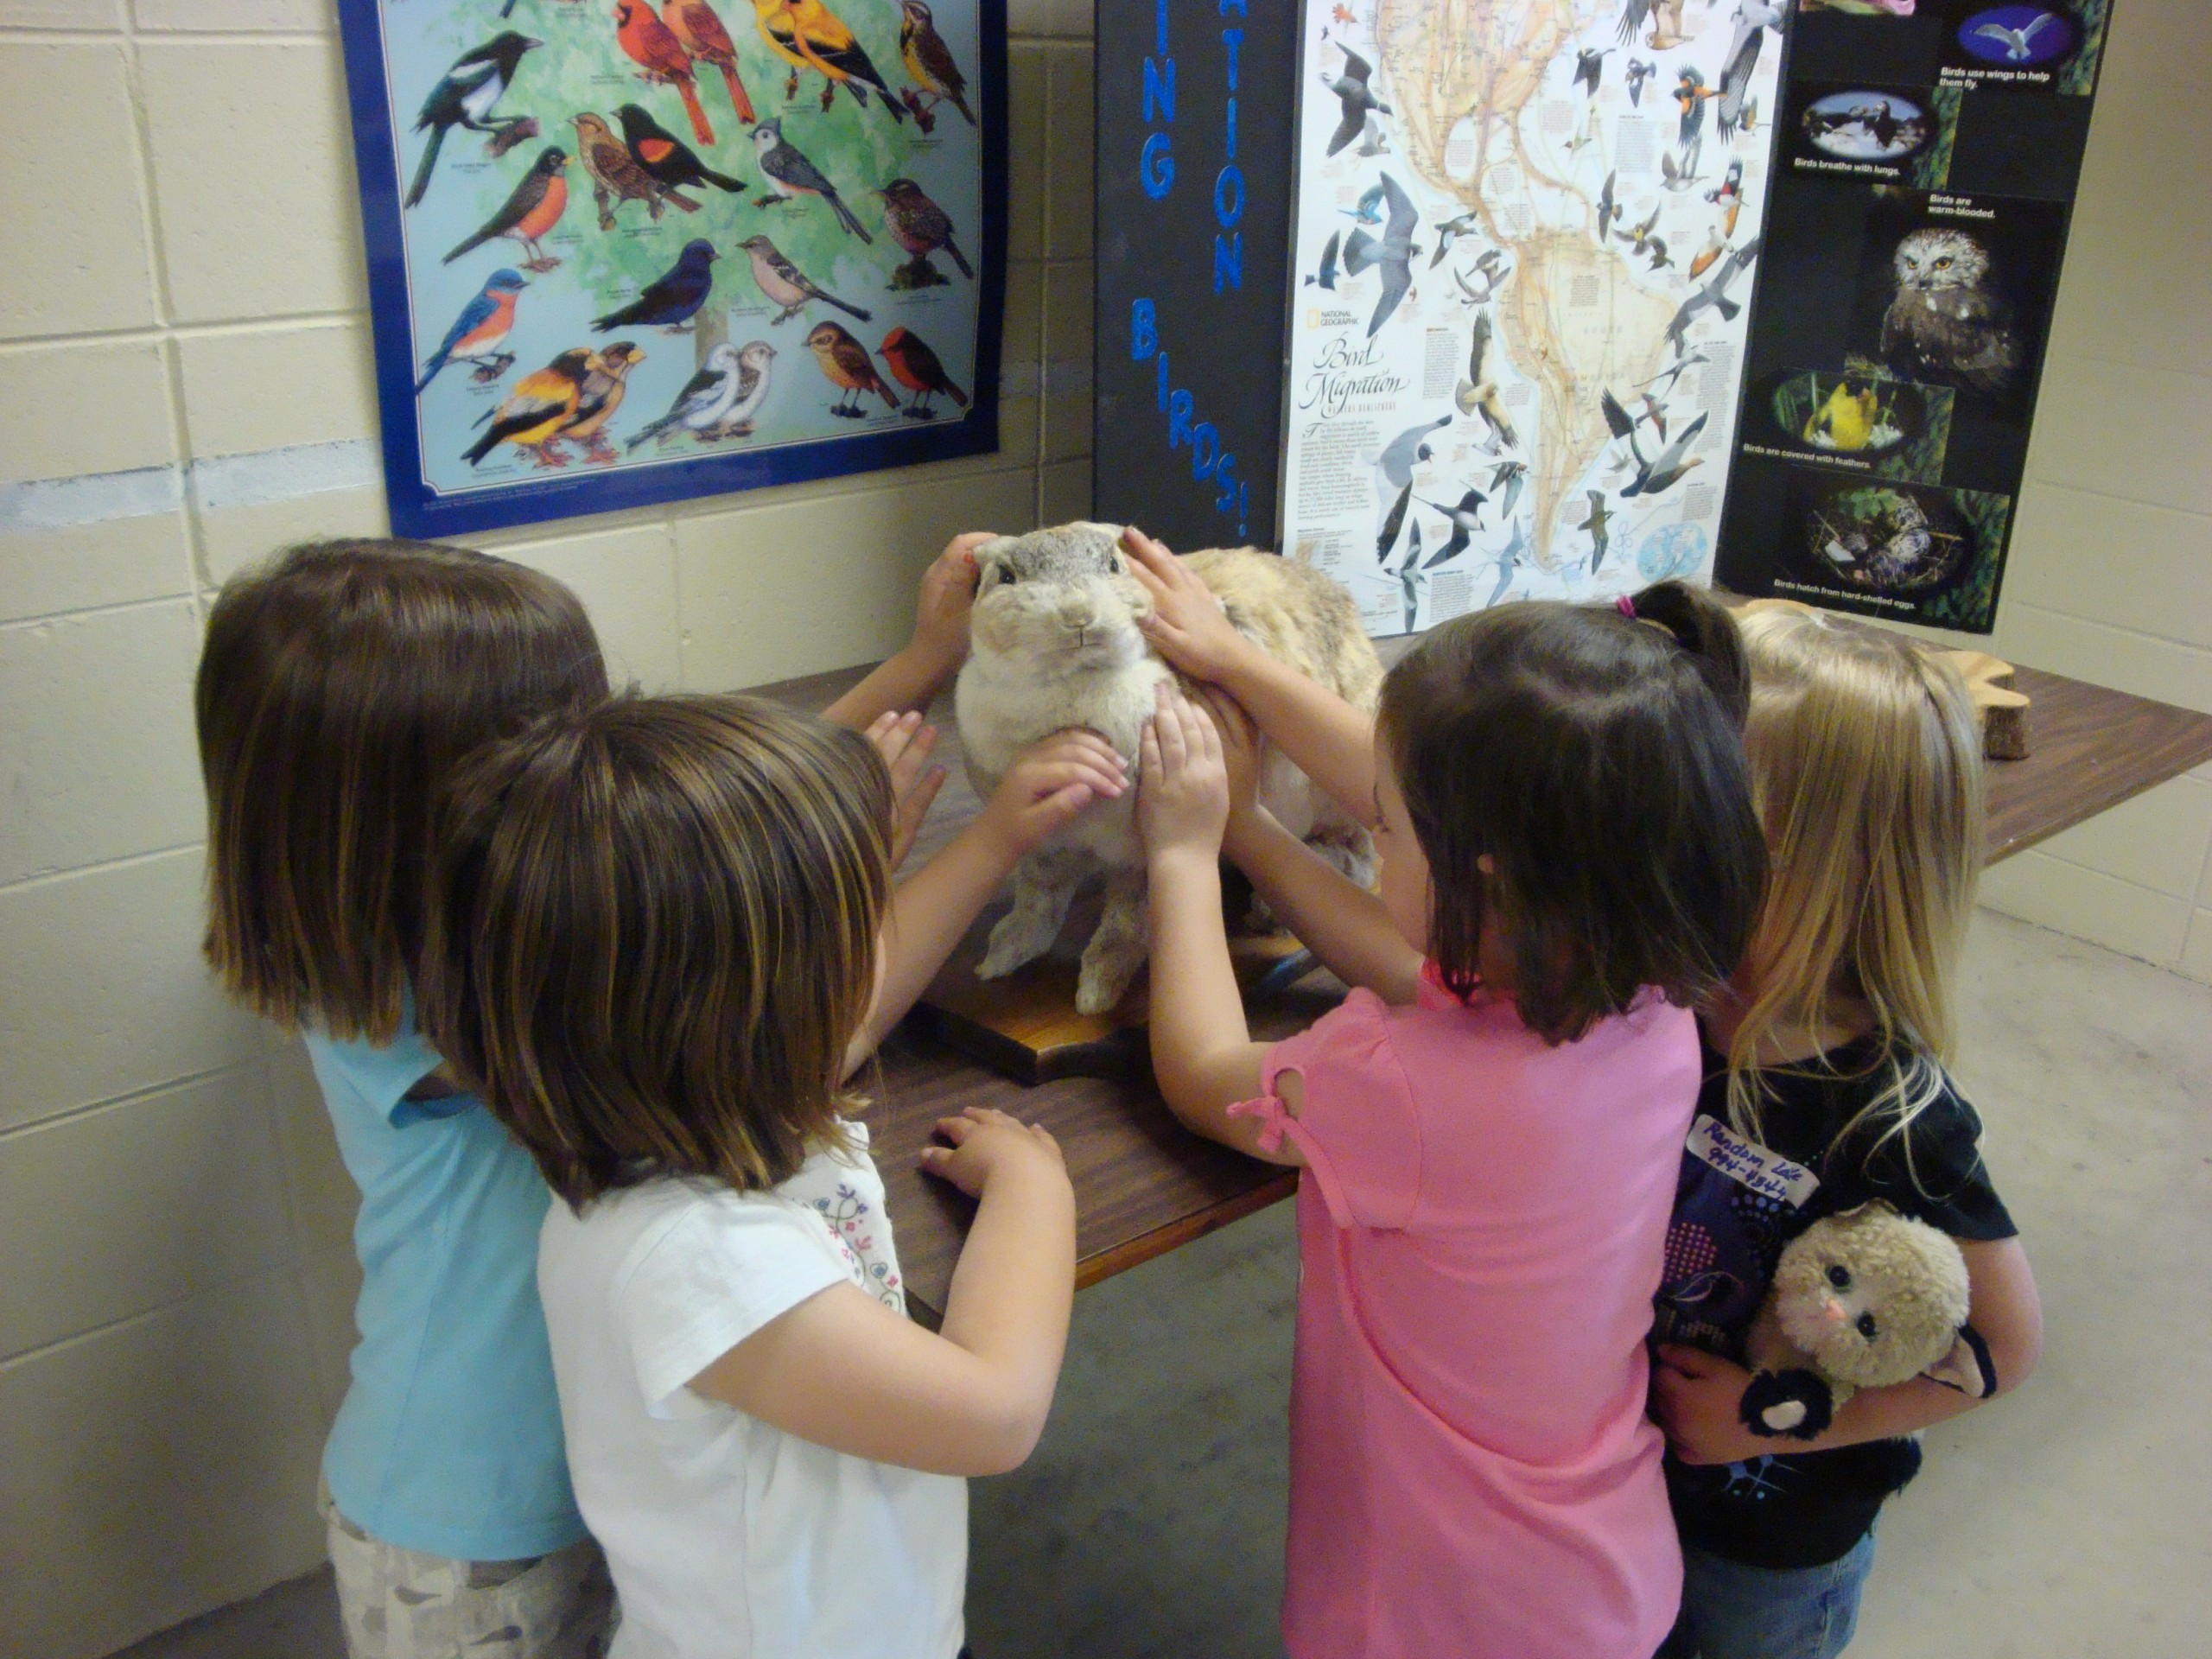 Children petting rabbit in Educational Building